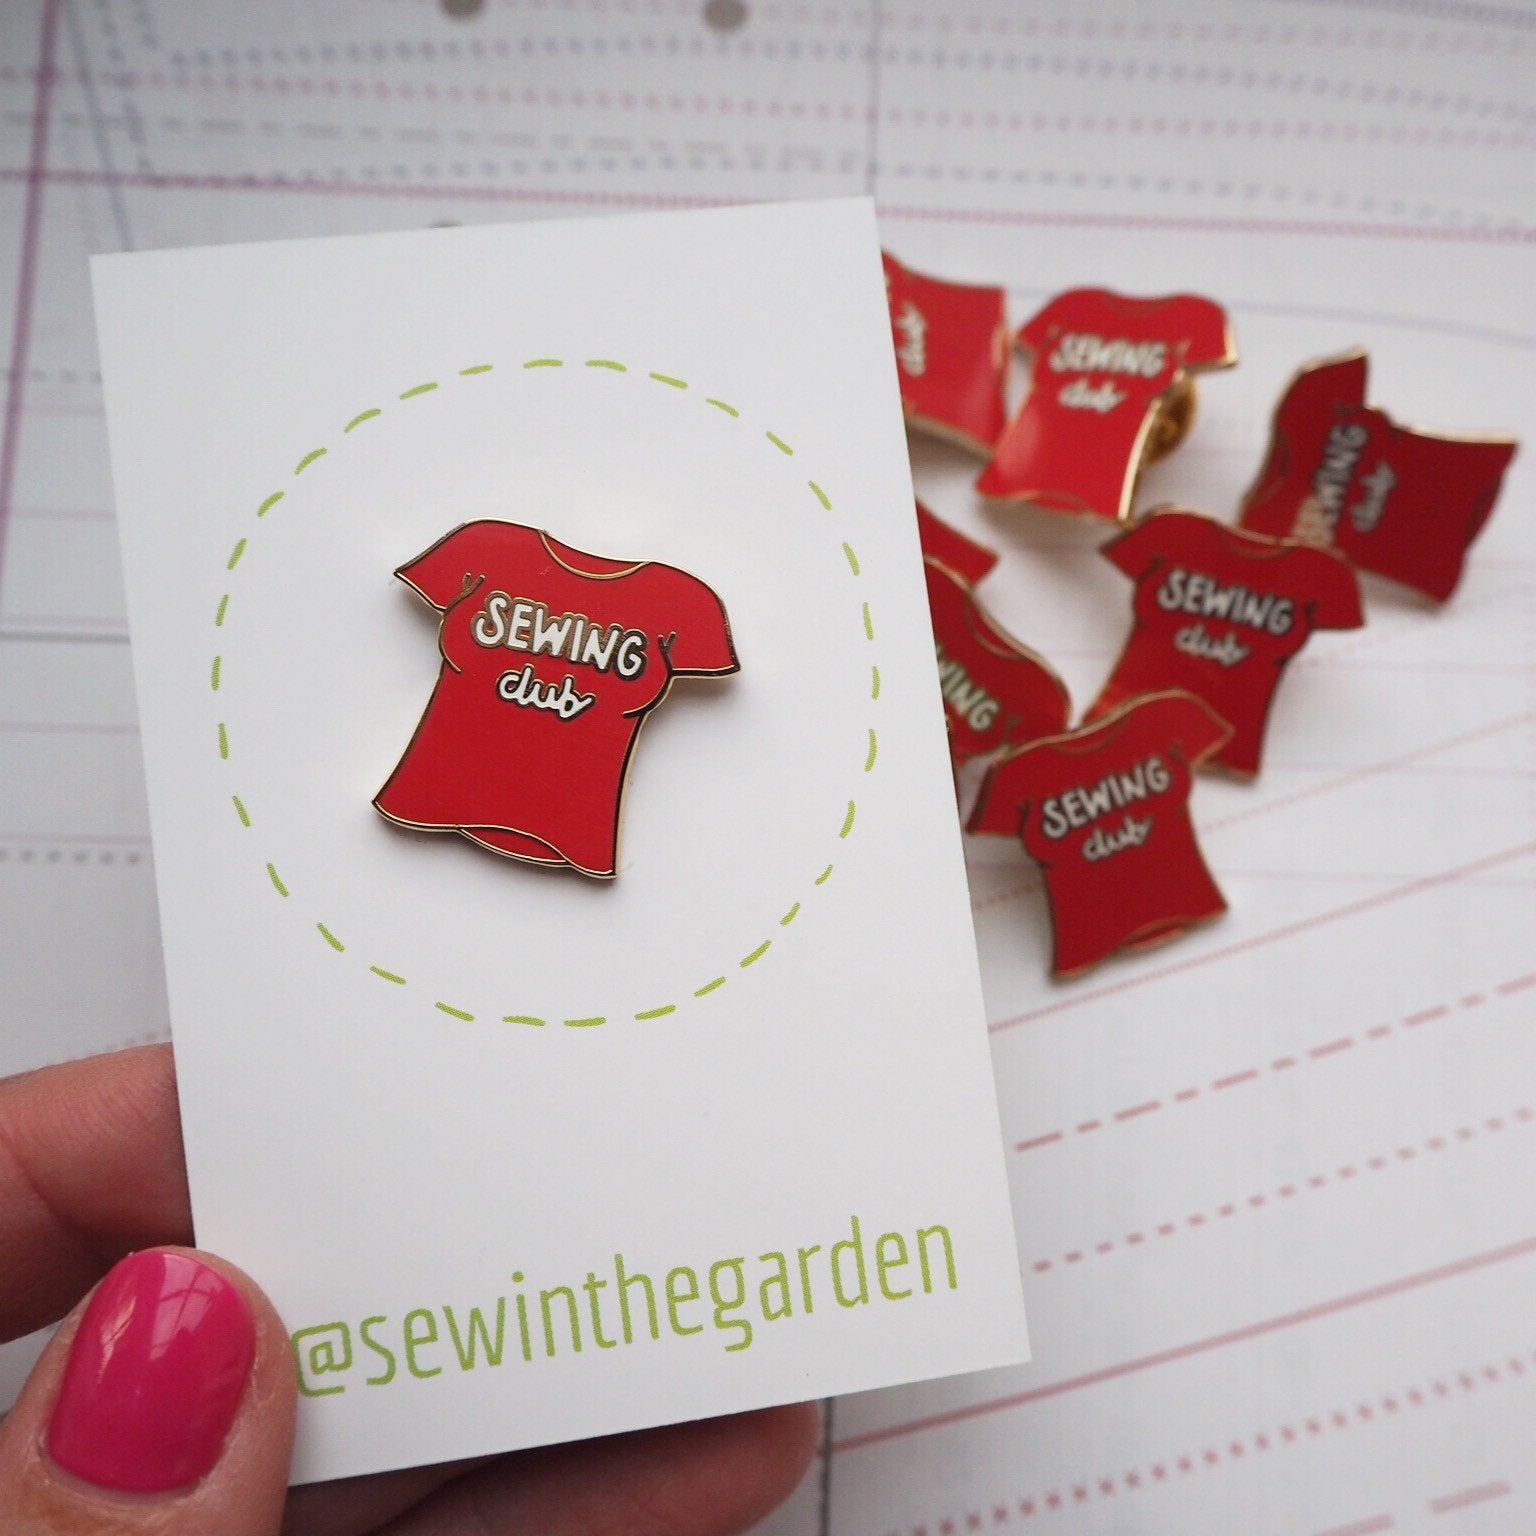 sewing club red brooch